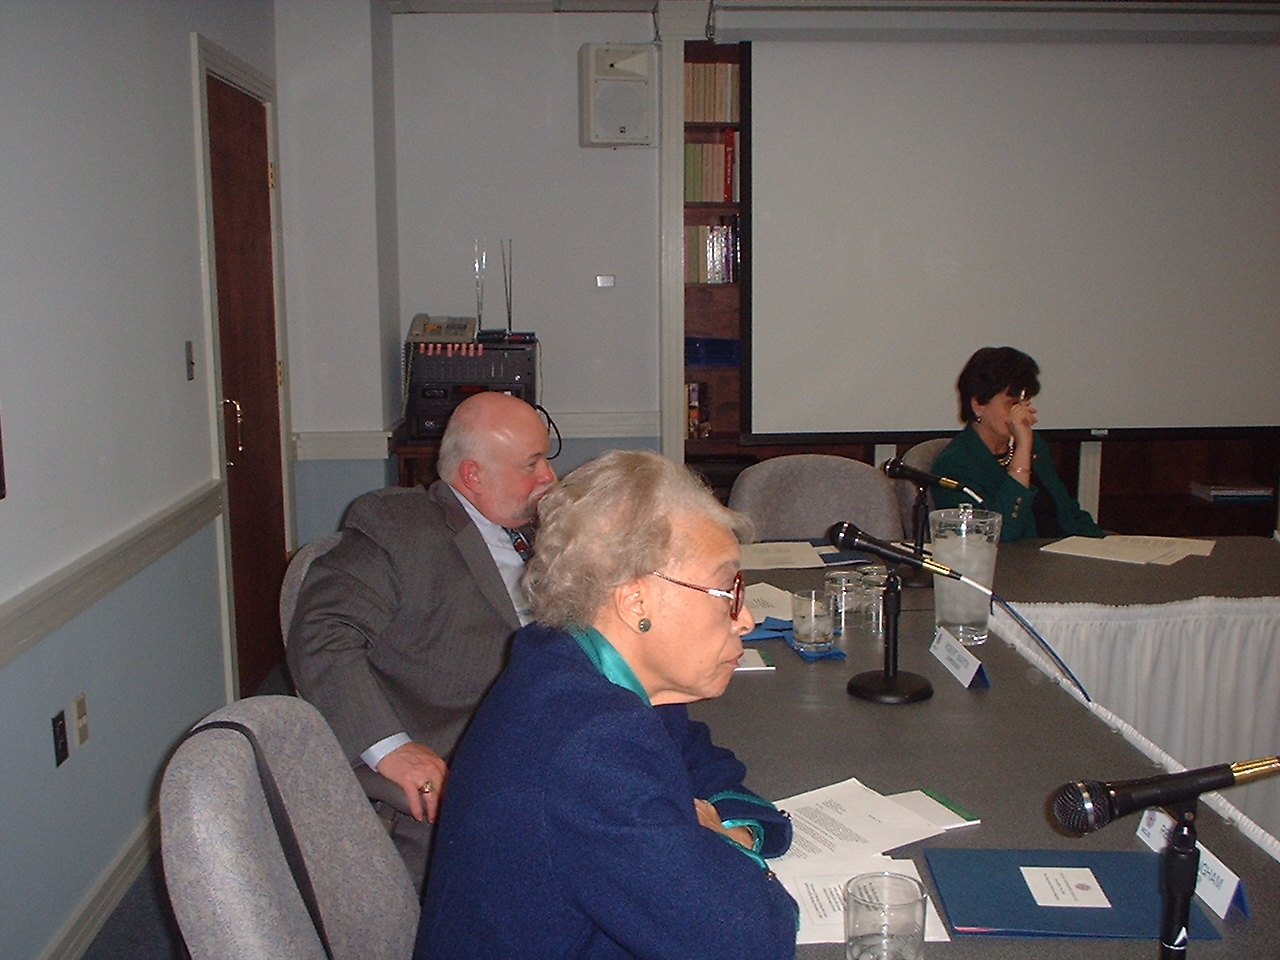 Rebecca Bingham and Bob Martin at National Museum and Library Services Board Meeting